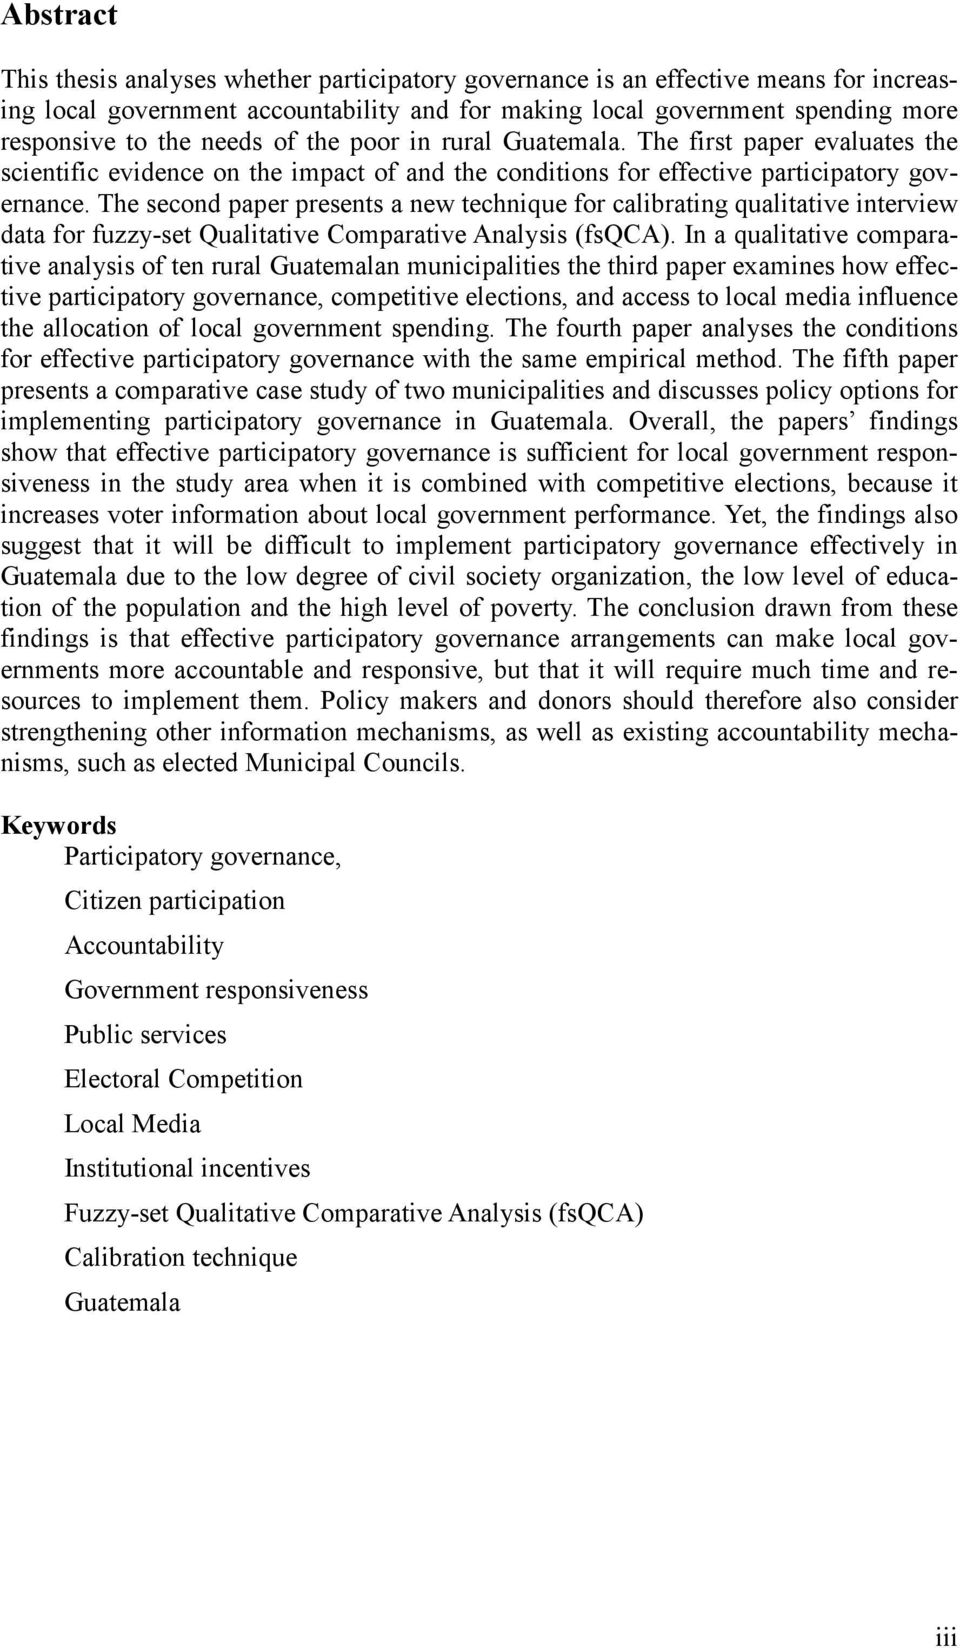 The second paper presents a new technique for calibrating qualitative interview data for fuzzy-set Qualitative Comparative Analysis (fsqca).